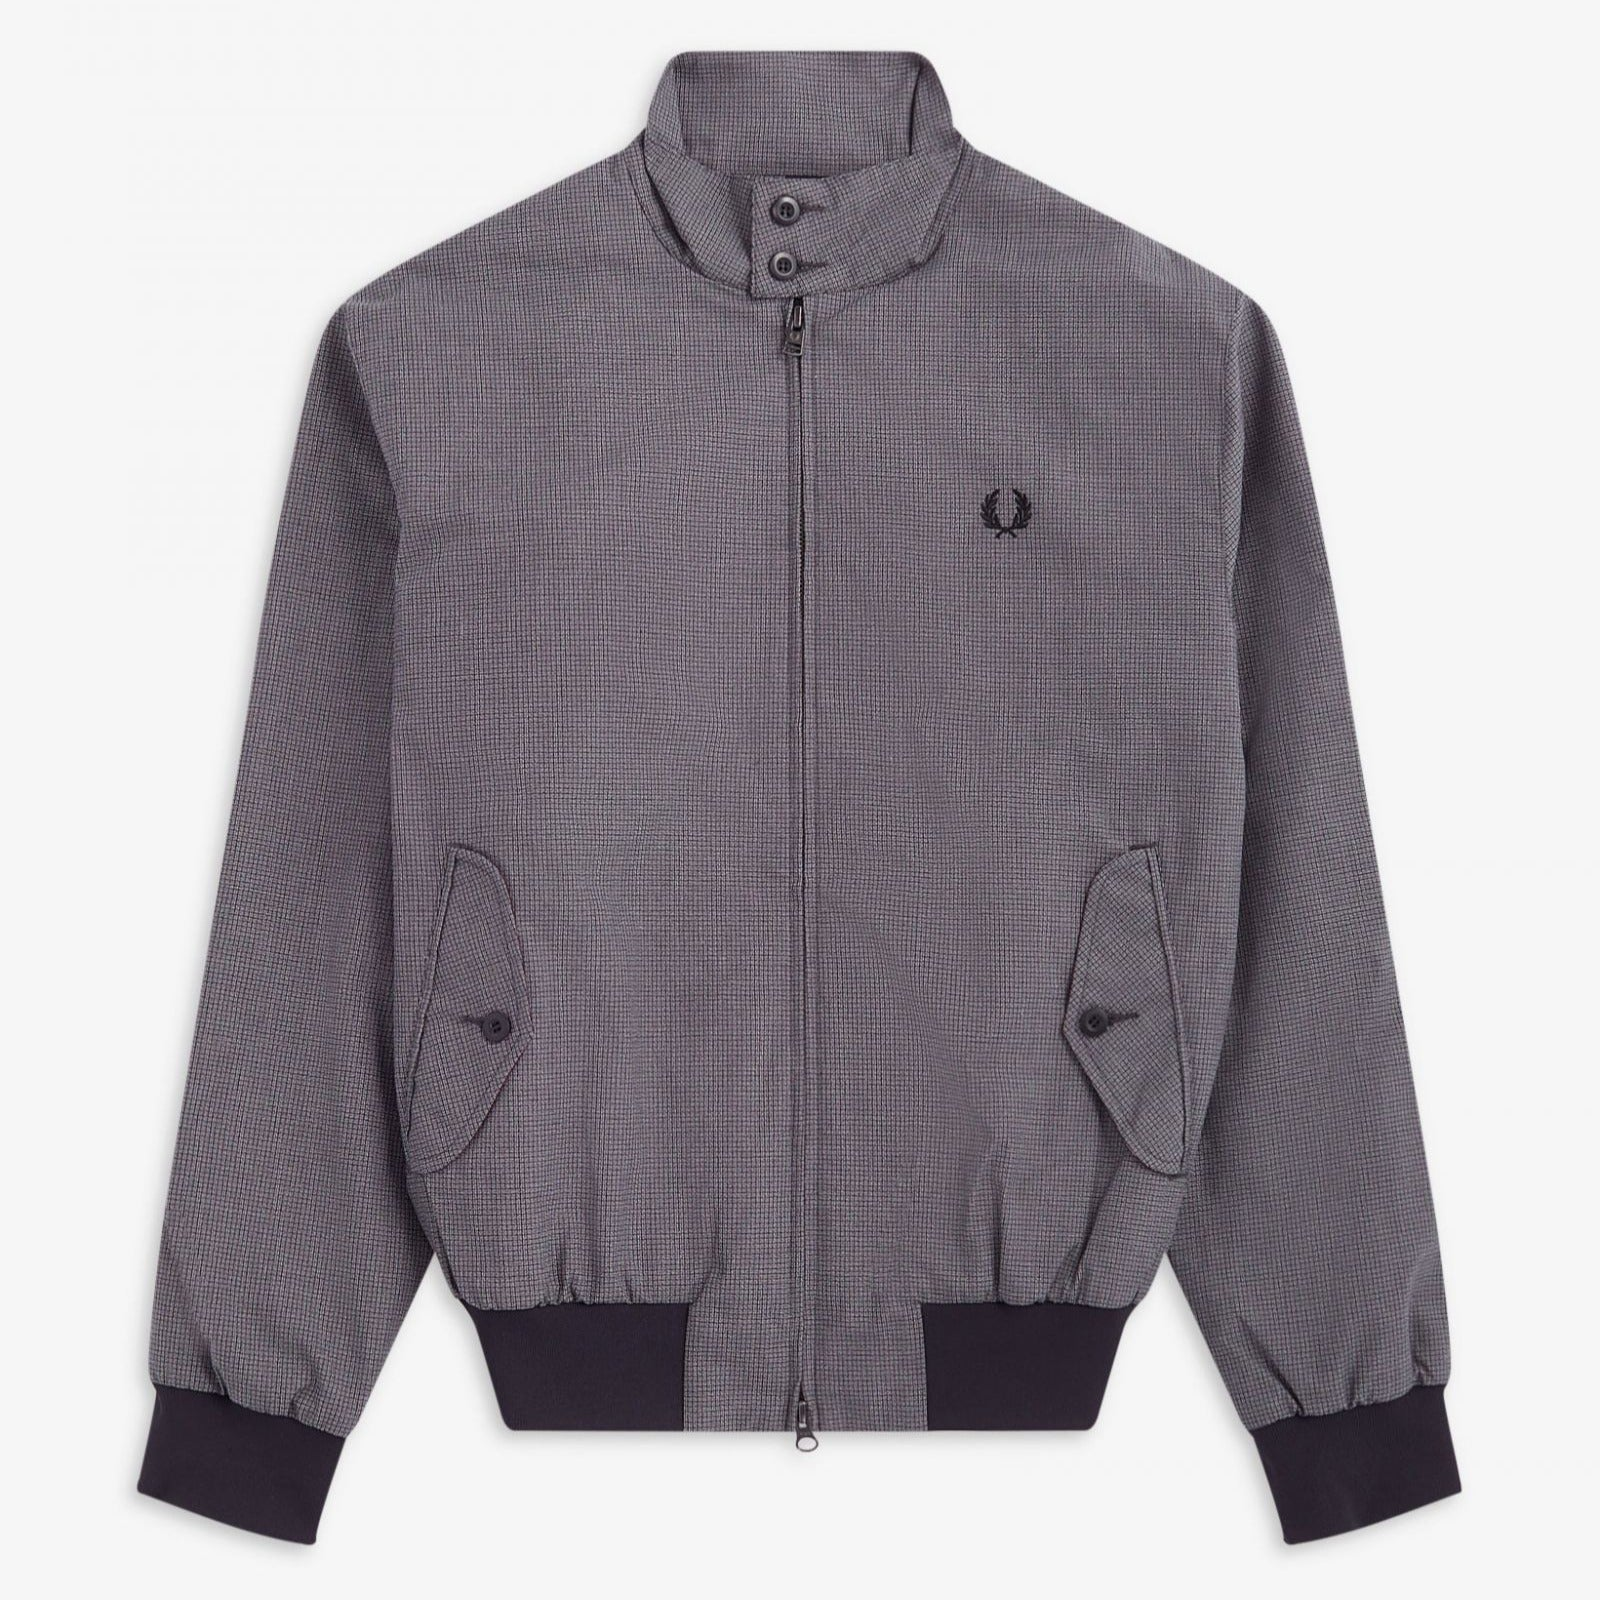 Fred Perry Jacquard Harrington Jacket Black